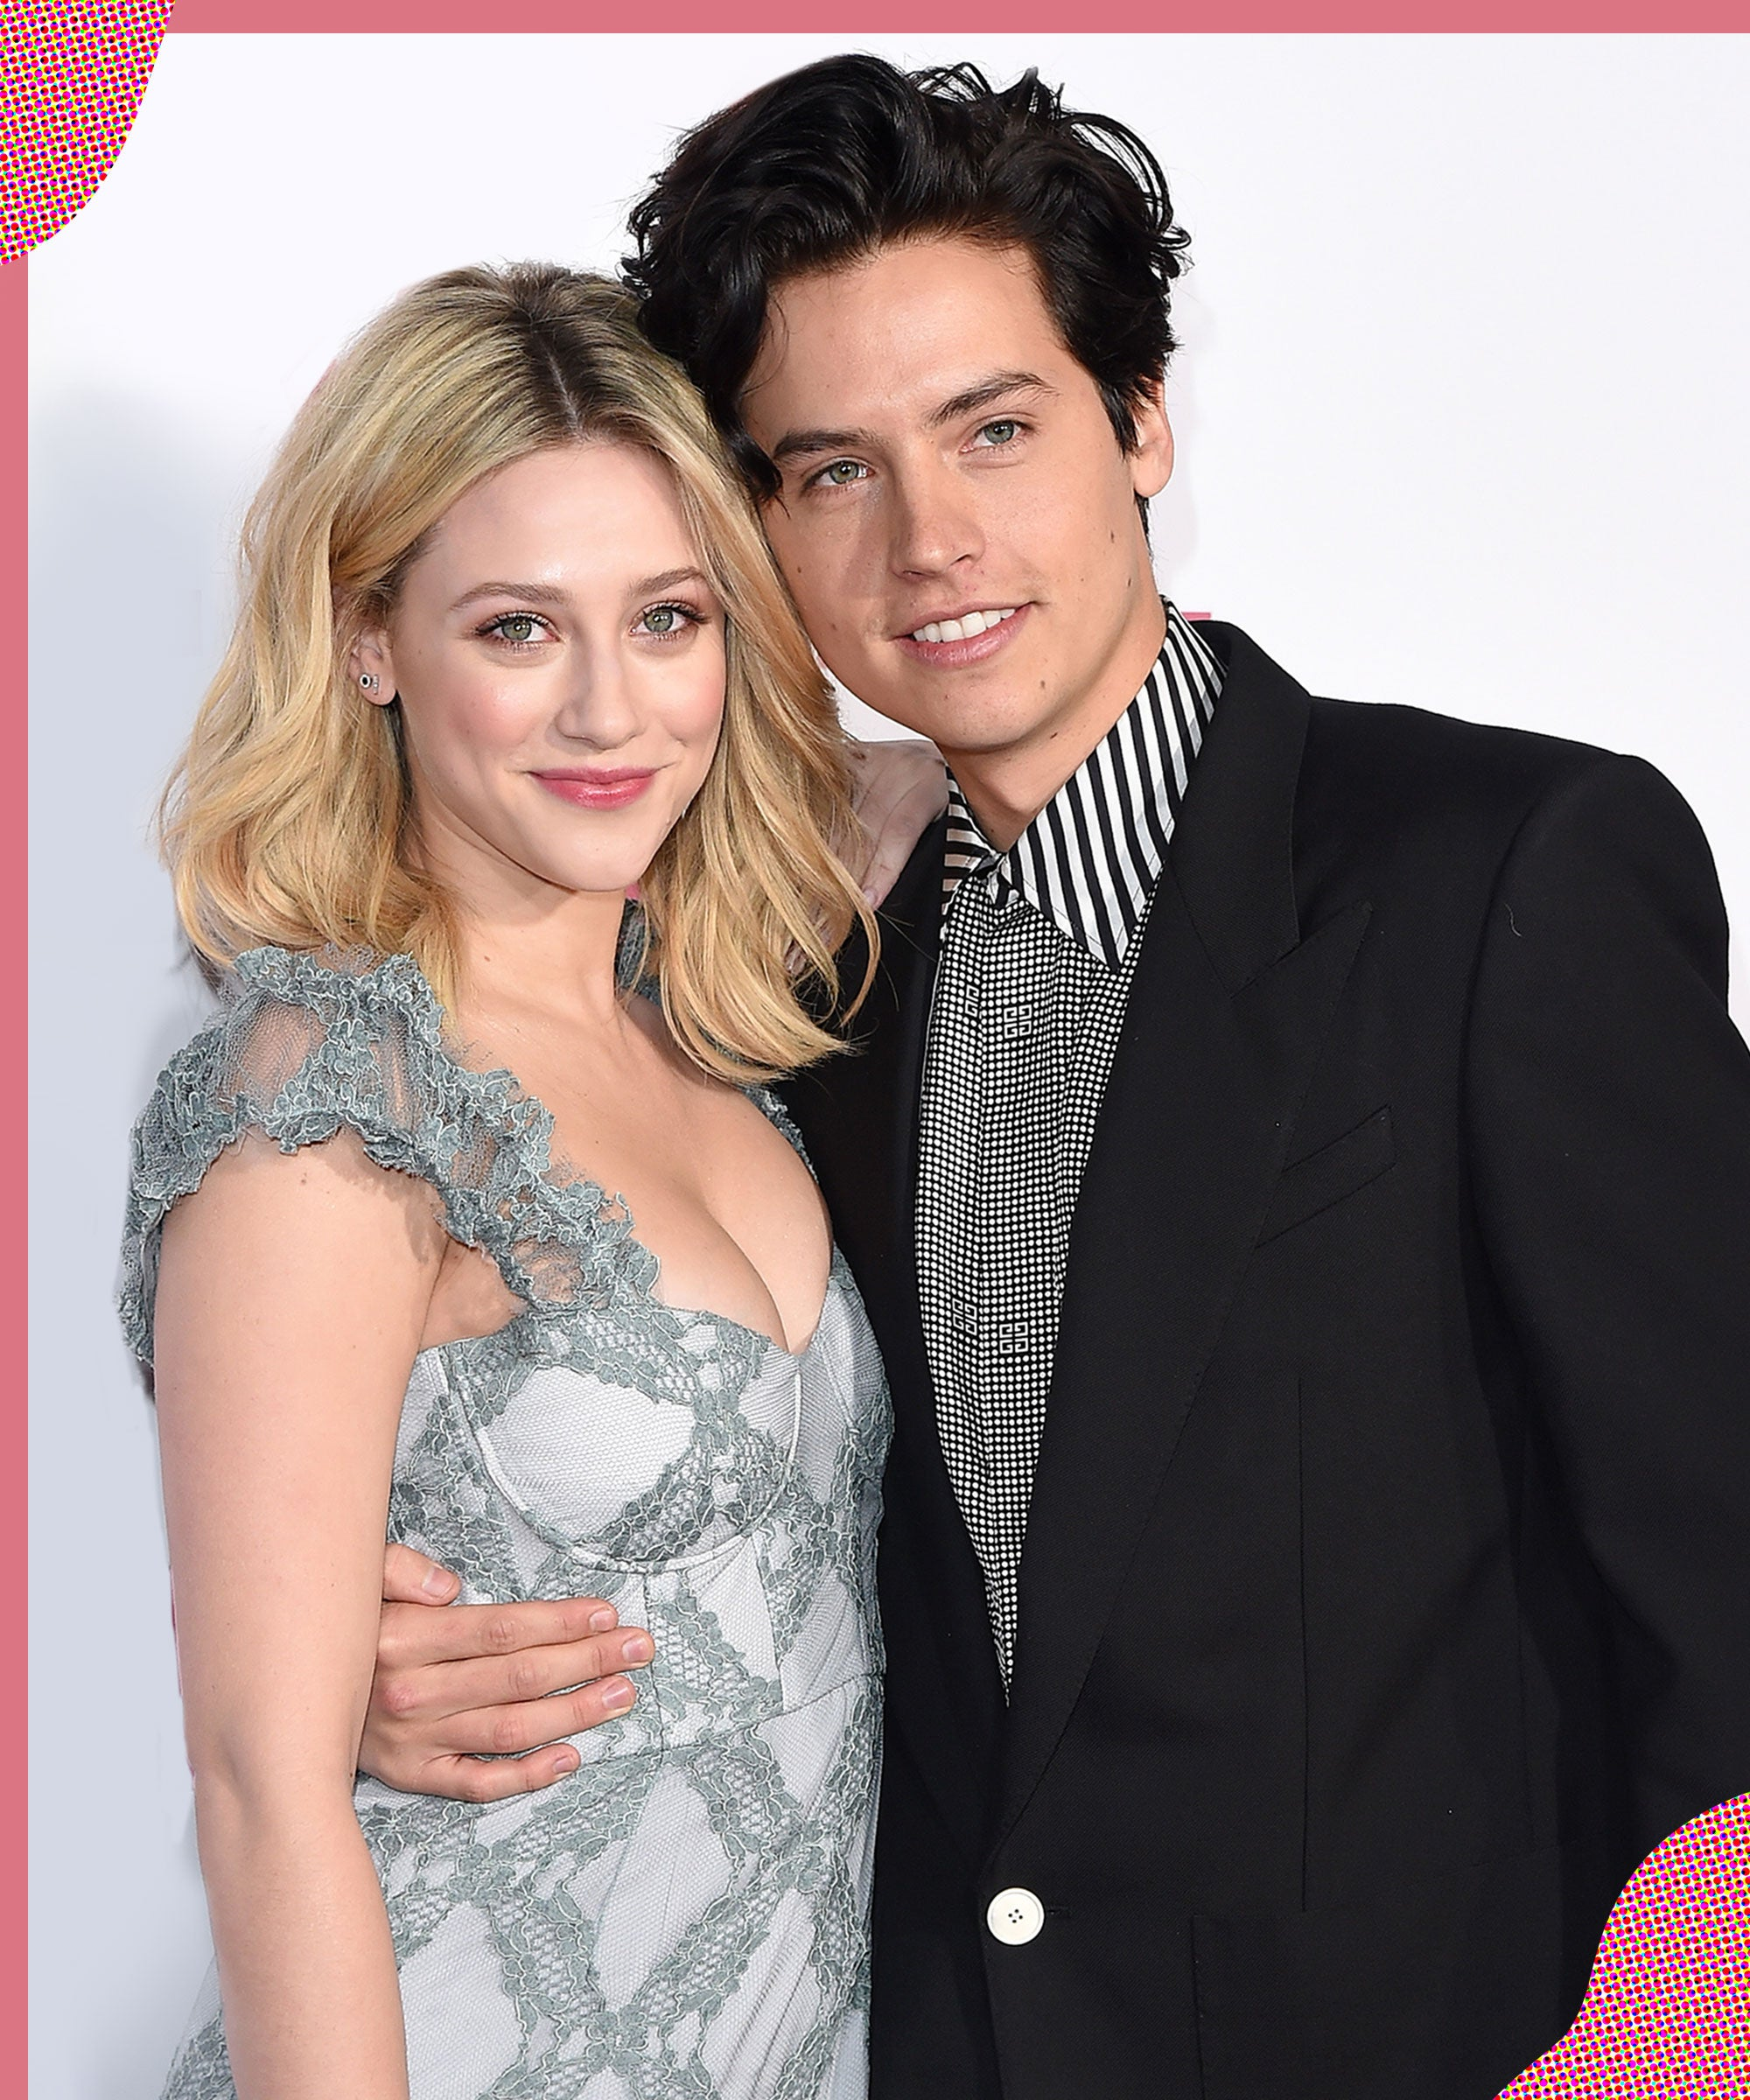 """Lili Reinhart Teases Halloween Costume With """"Boyfriend"""" Cole Sprouse"""